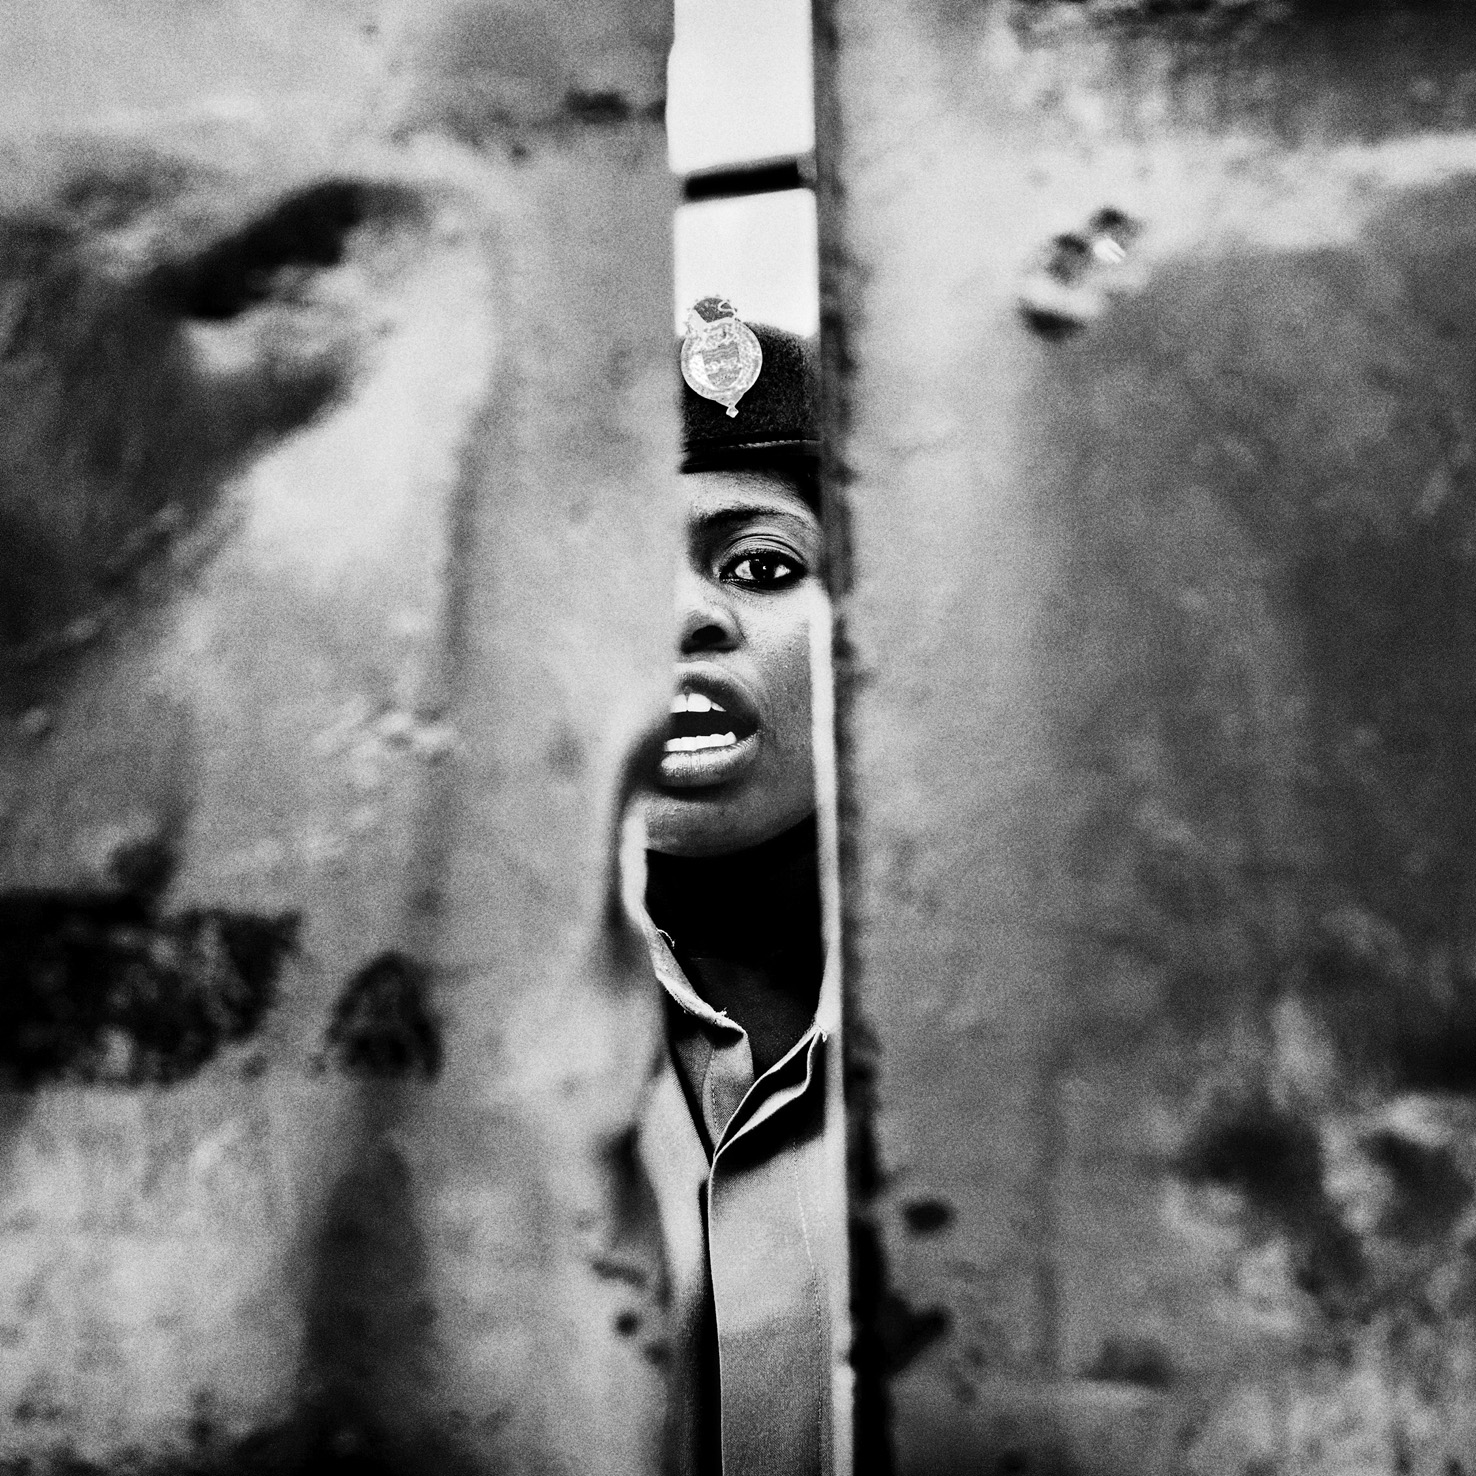 MALAWI. Blantyre. May 27th, 2015. Chichiri Prison. A prison guard closes the prison's main gate as she shouts to detained's relatives [not pictured] that the parental visit time is over.  © Luca Sola 2015